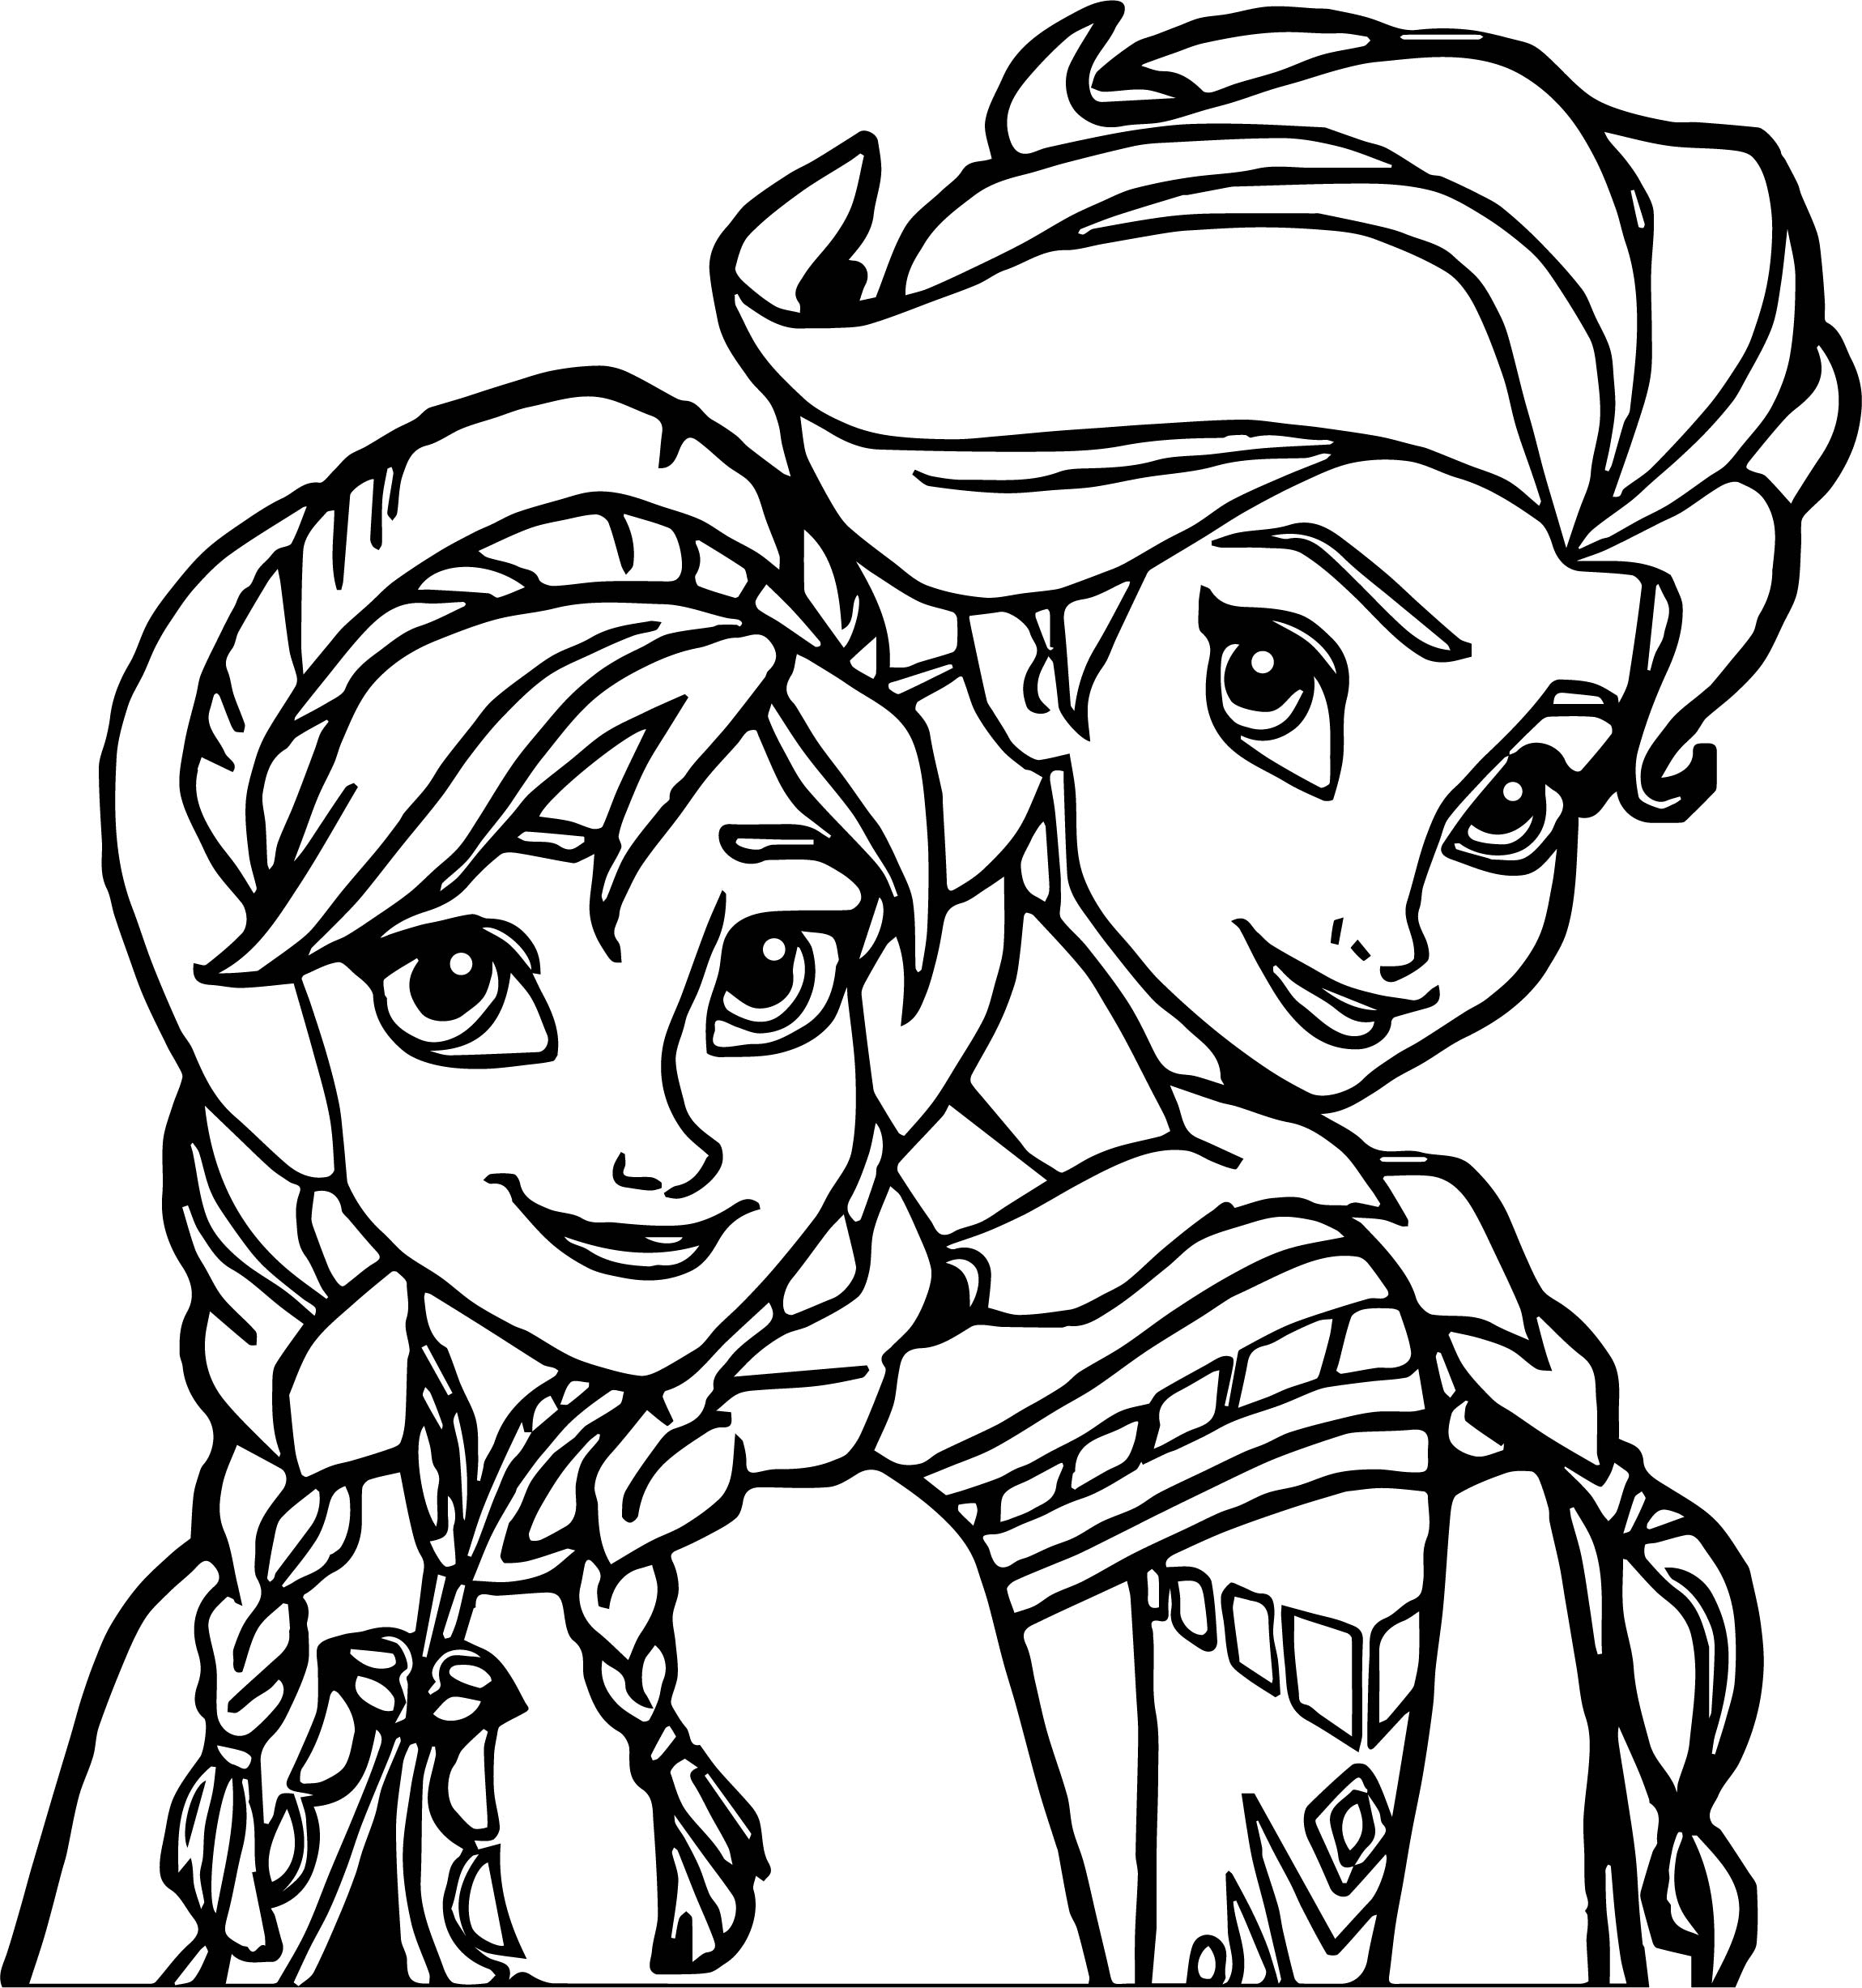 elsa and anna coloring printables 4 beautiful elsa coloring pages to print instant knowledge and printables elsa anna coloring